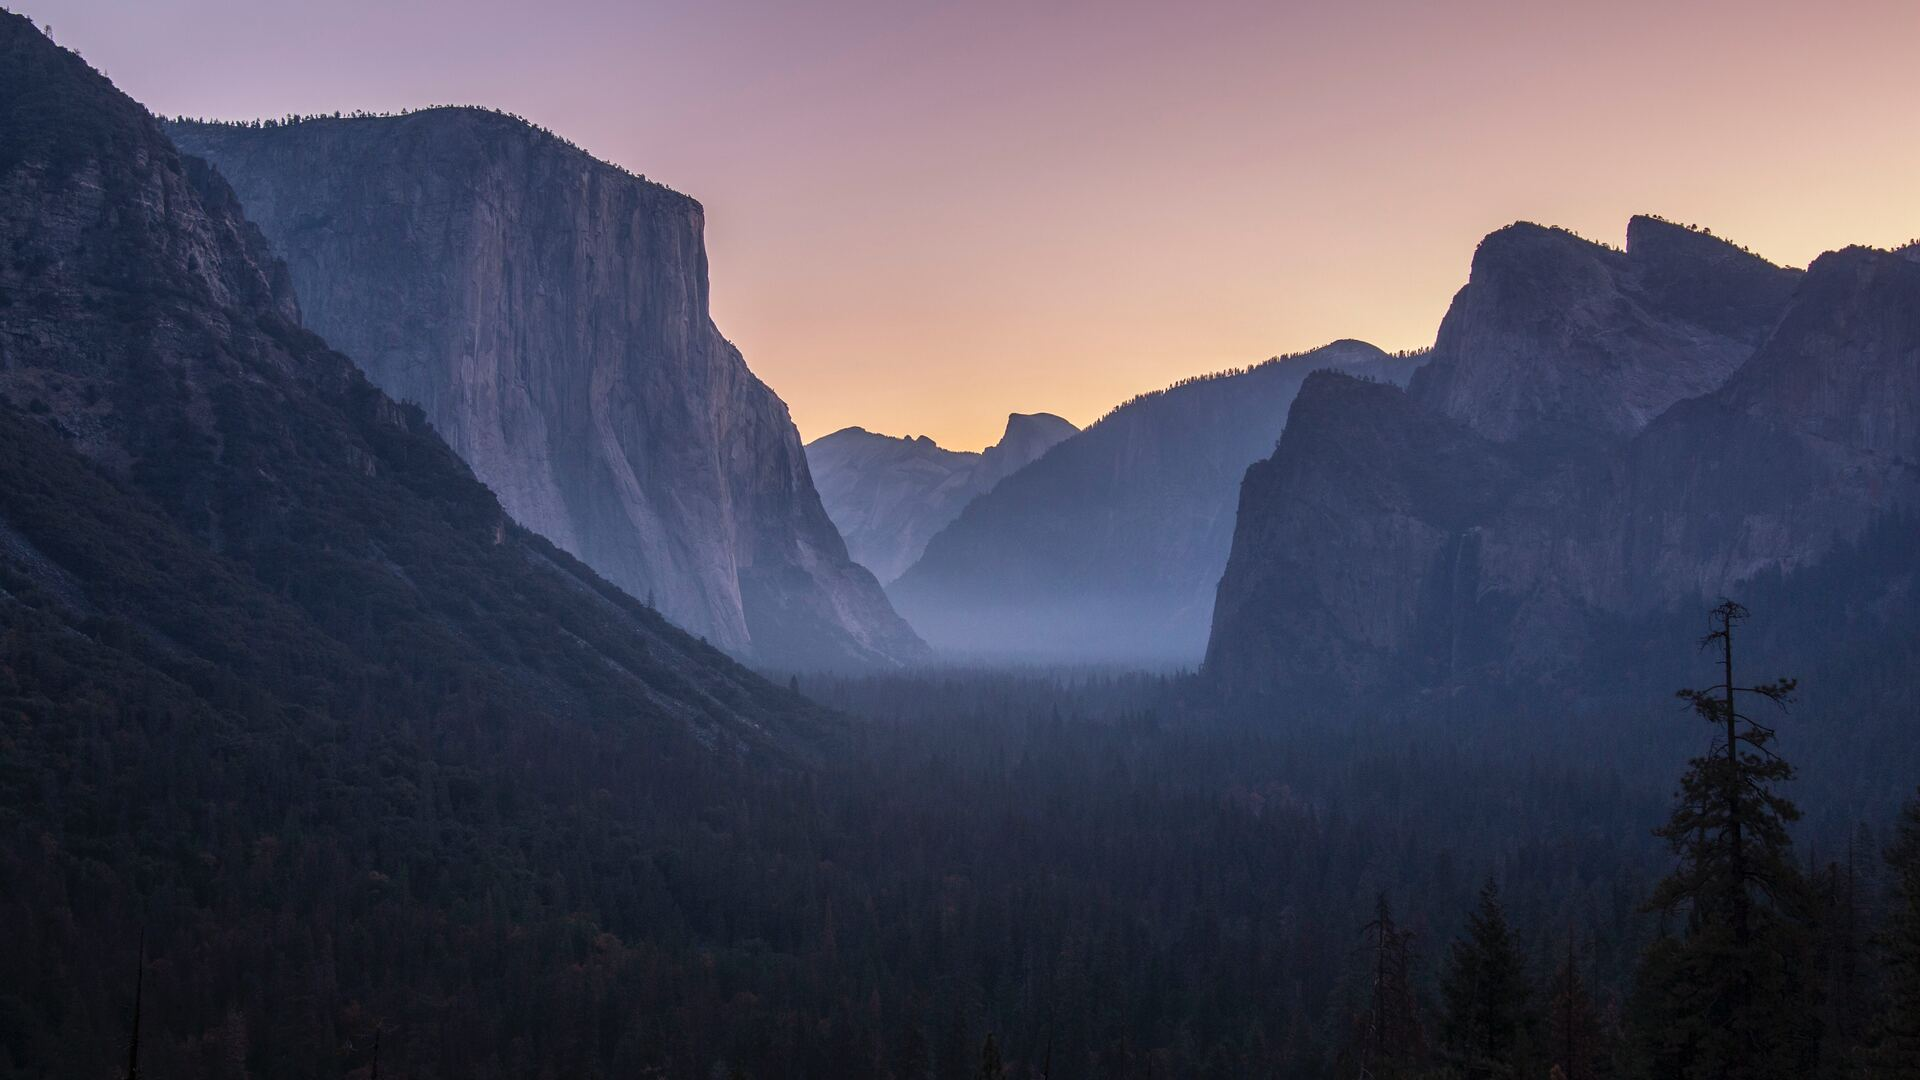 1920x1080 yosemite national park 5k laptop full hd 1080p - Yosemite national park hd wallpaper ...